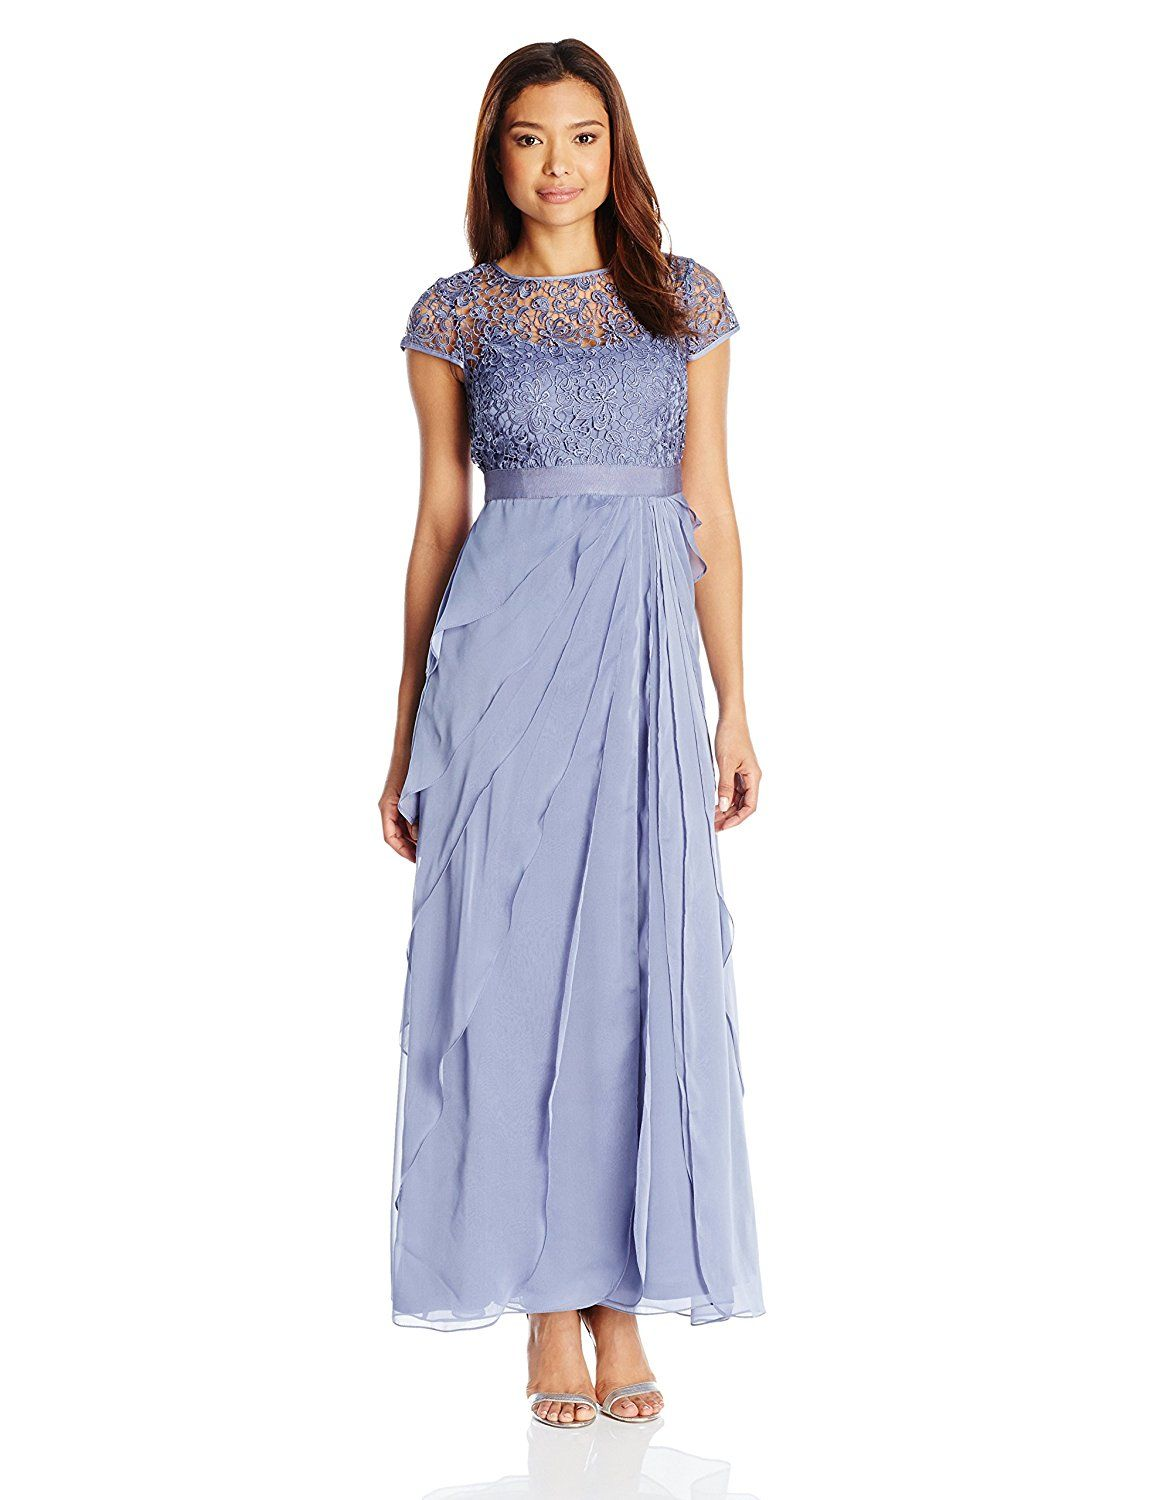 Adrianna Papell Womens Petite Chiffon Flutter Gown With Lace Bodice